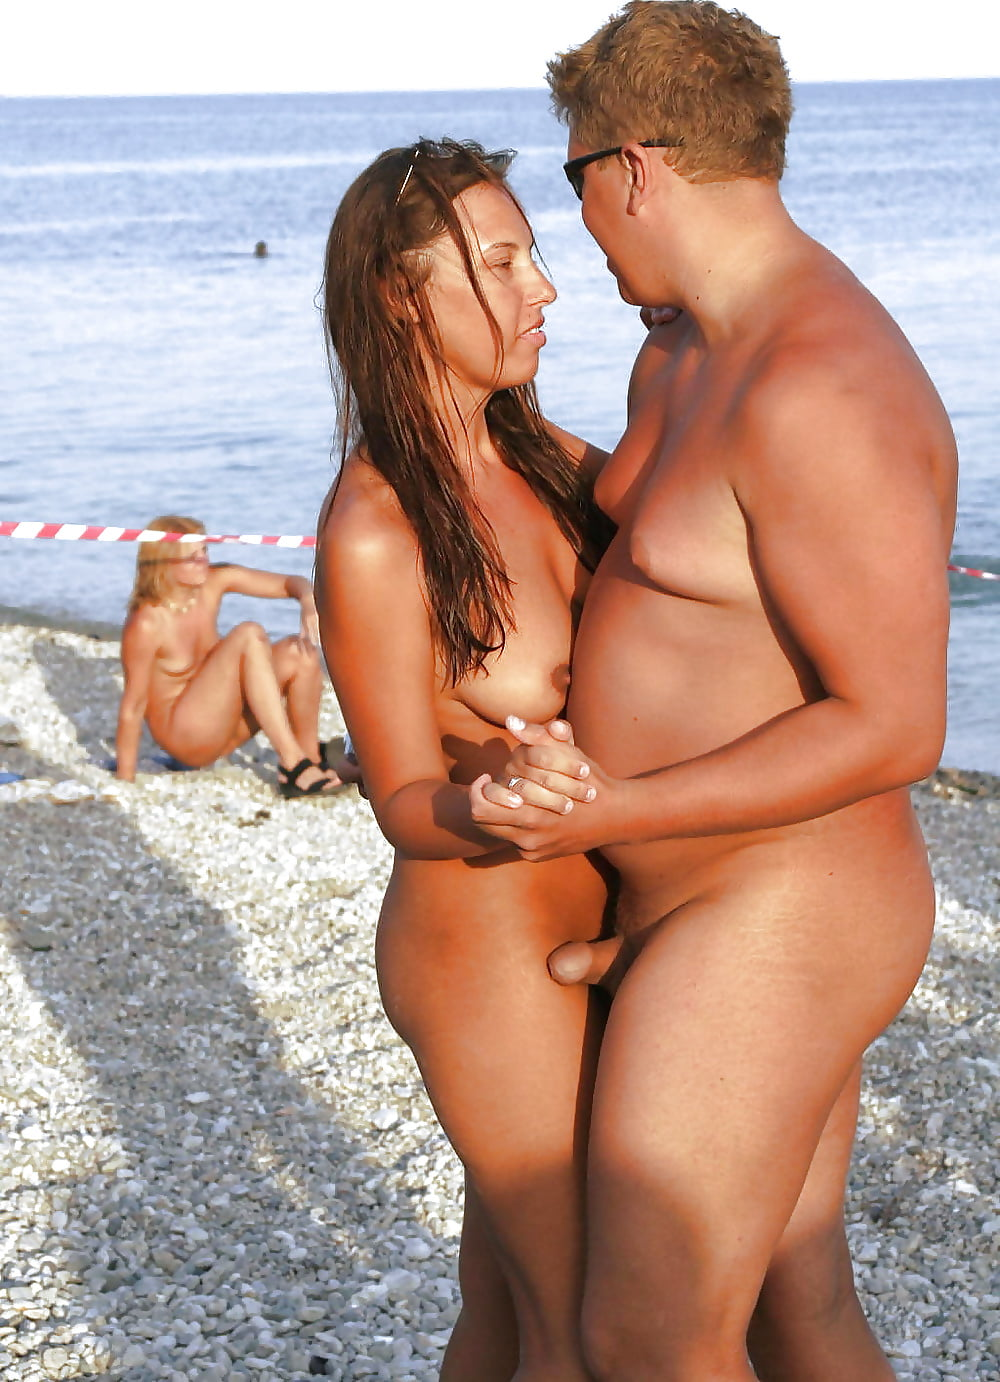 erections-on-the-nudebeach